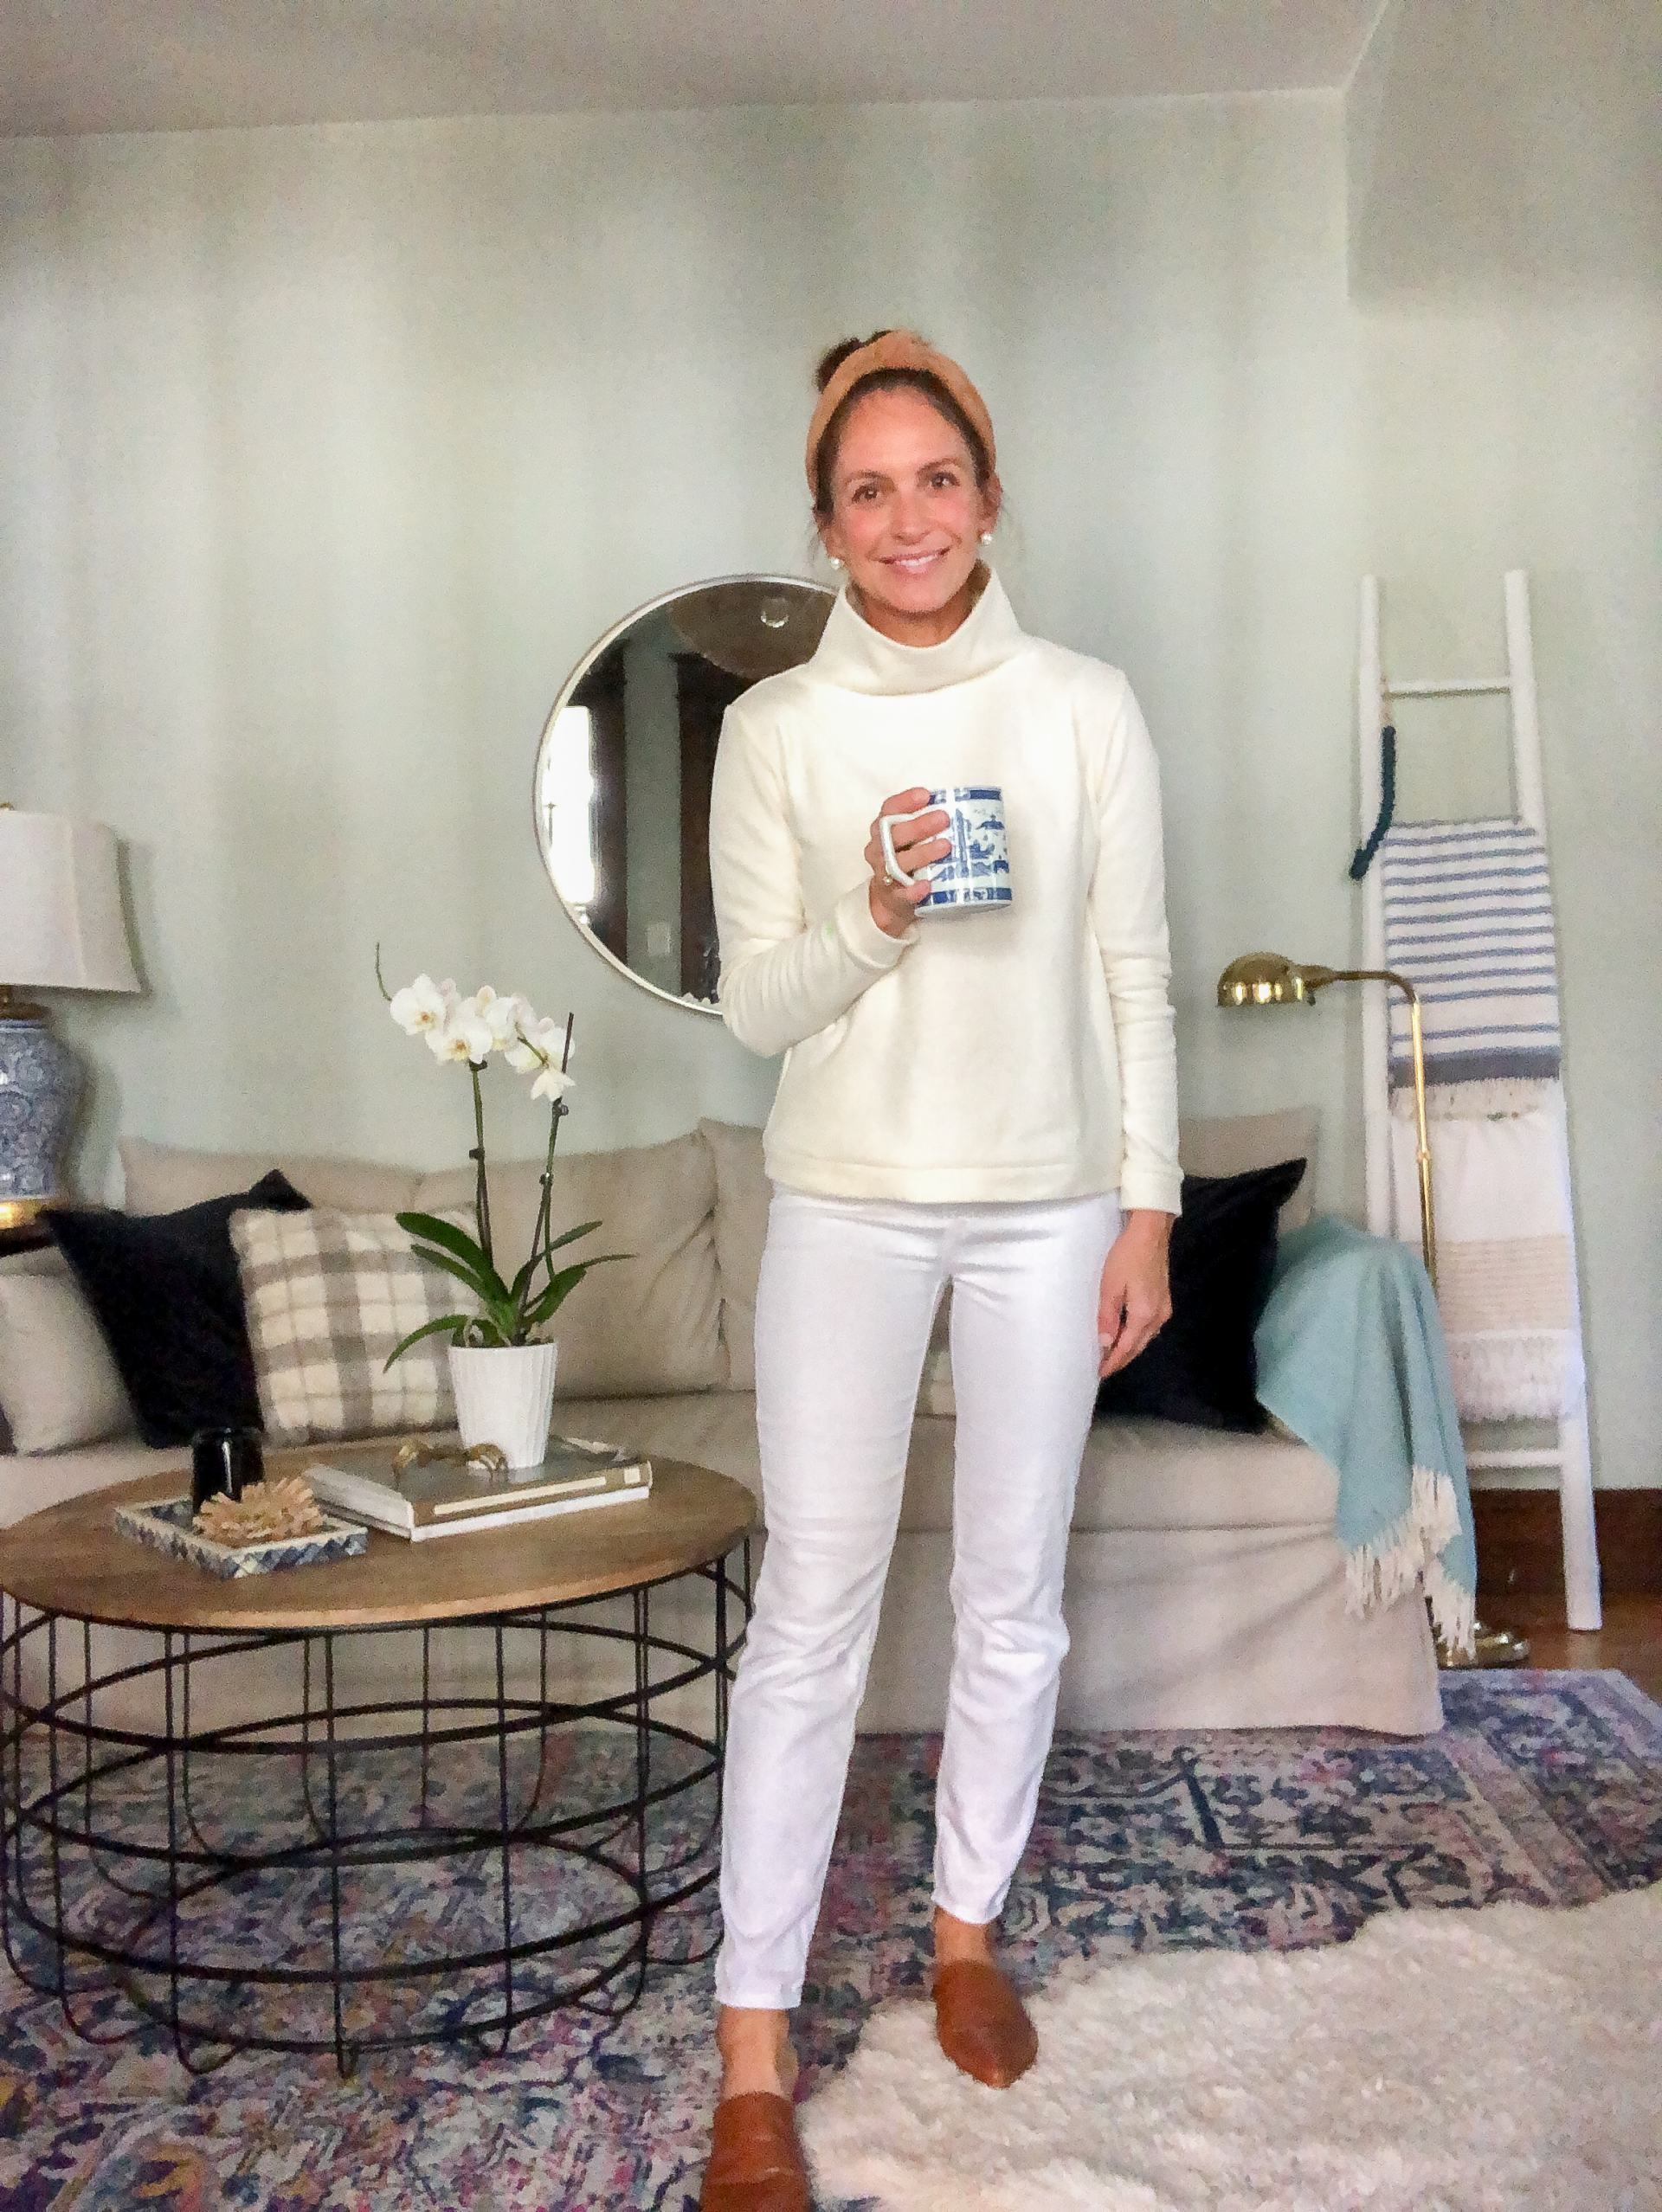 dudley stephens park slope fleece turtleneck with white jeans and mules